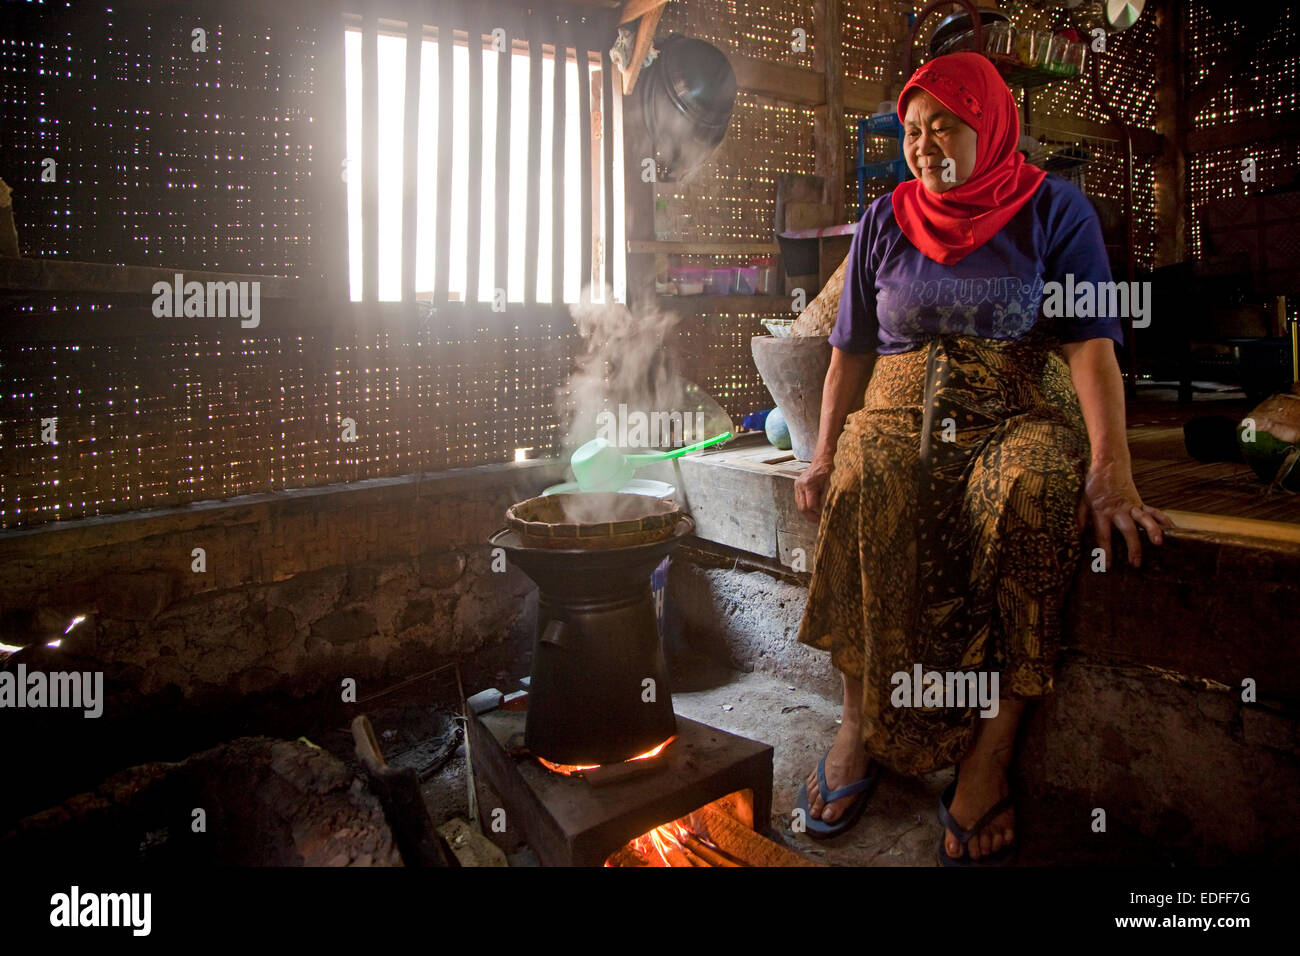 Indonesian elderly, woman cooking rice in traditional bamboo house, Cianjur Regency, West Java, Indonesia - Stock Image